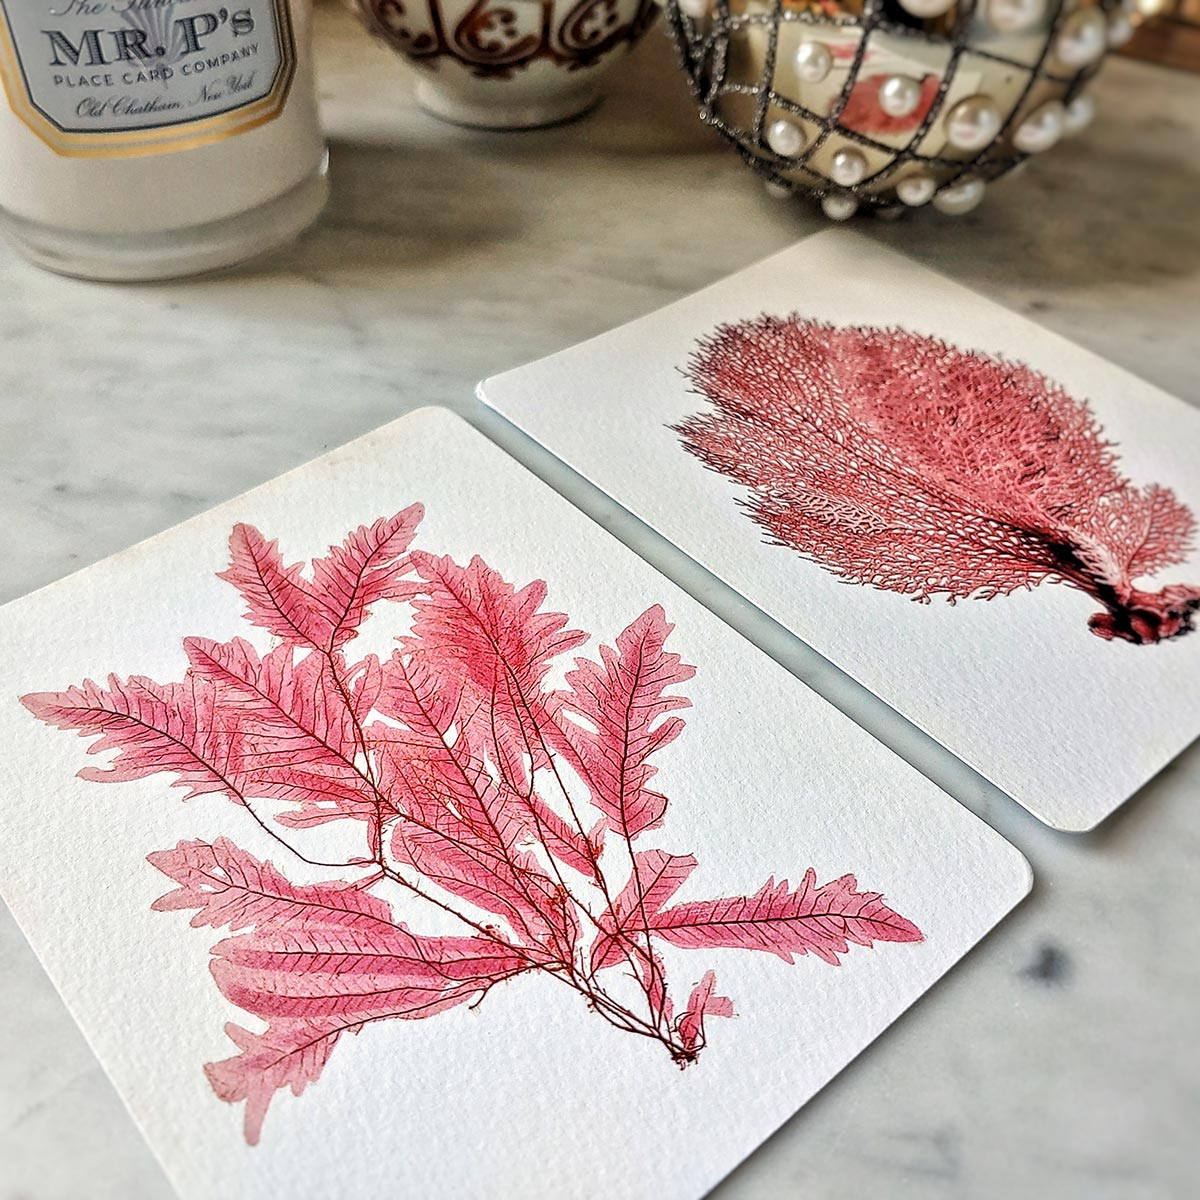 The Punctilious Mr. P's 'Red Seaweed & Coral' note card pack showing both red sea fan and seaweed